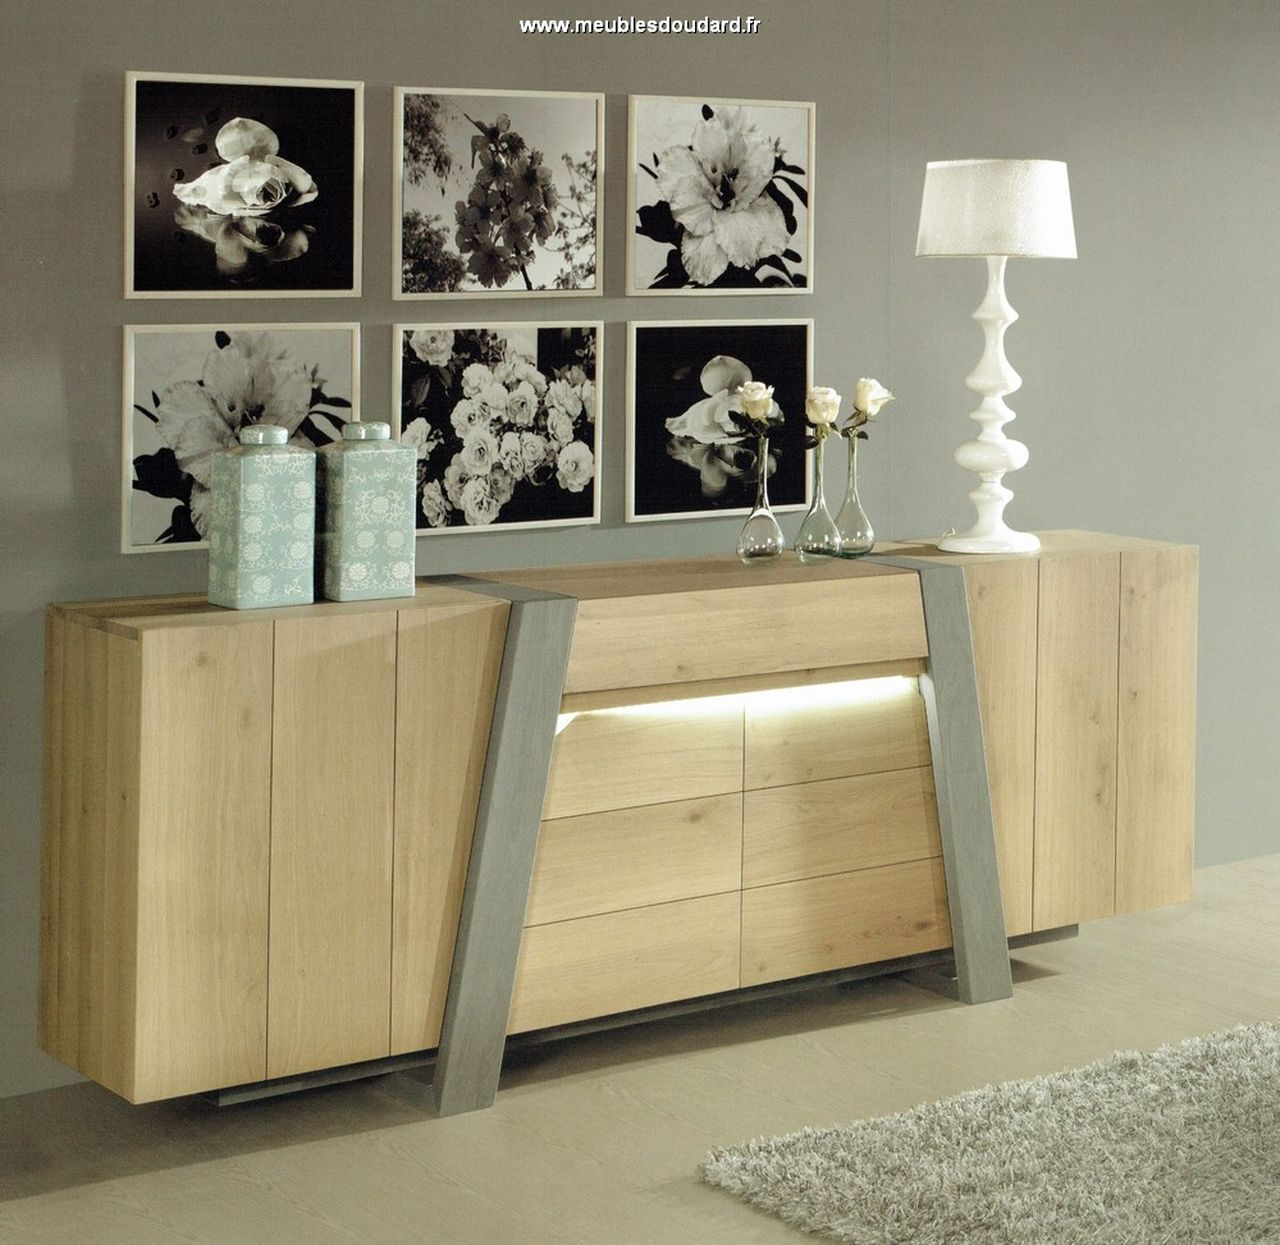 bahut en bois massif maison design. Black Bedroom Furniture Sets. Home Design Ideas